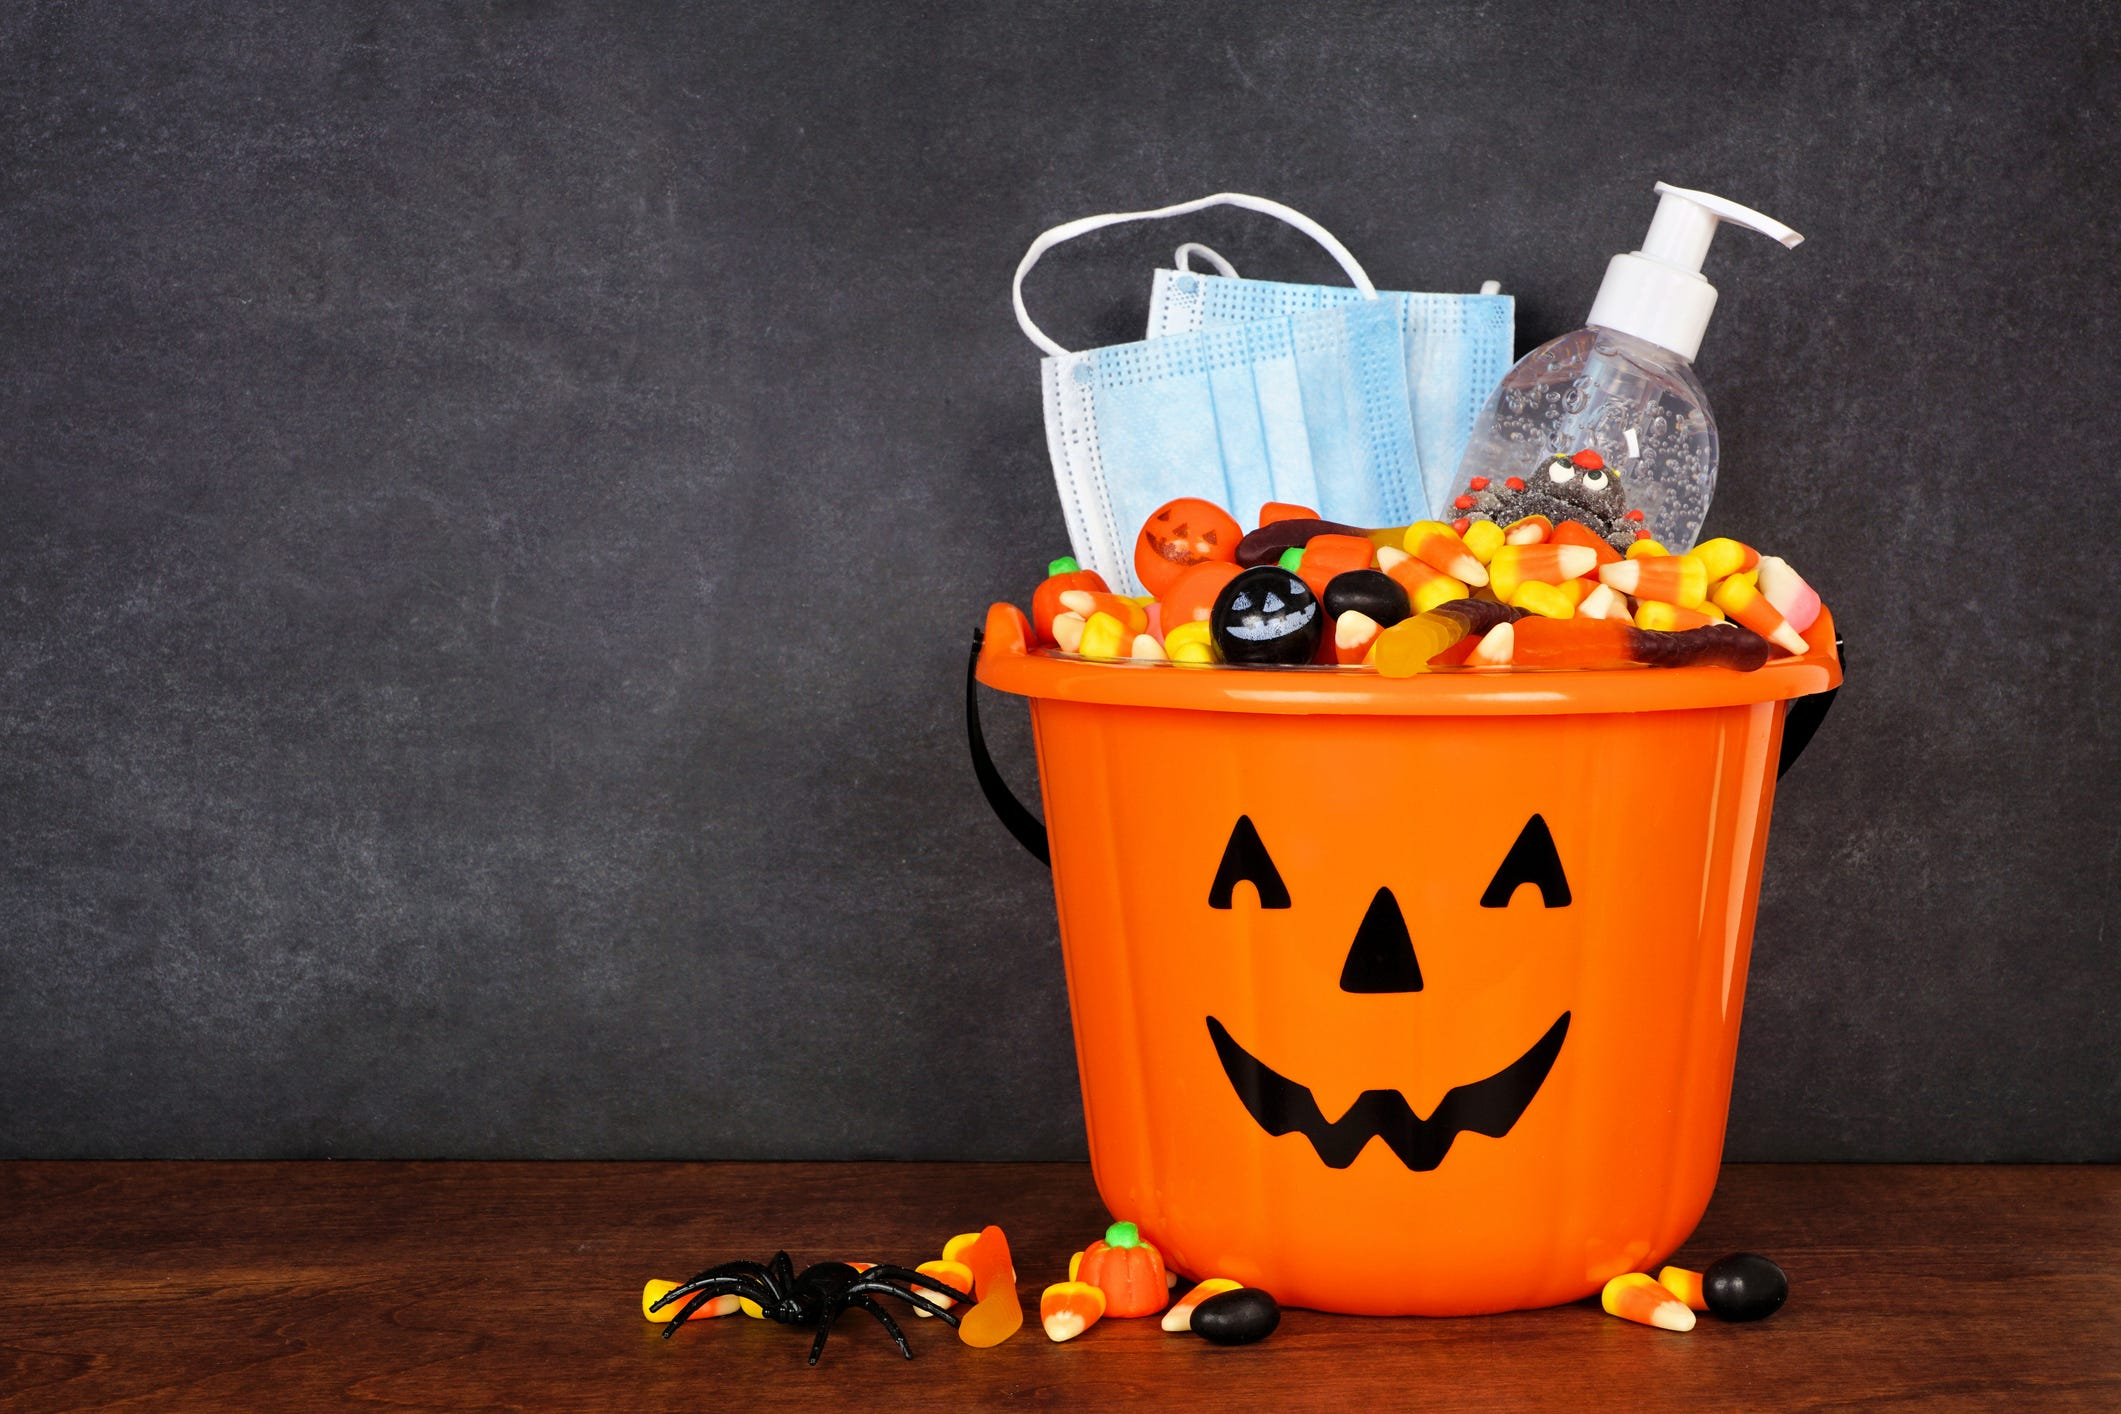 Michigan: To prevent COVID-19 infection in kids, avoid crowds this Halloween